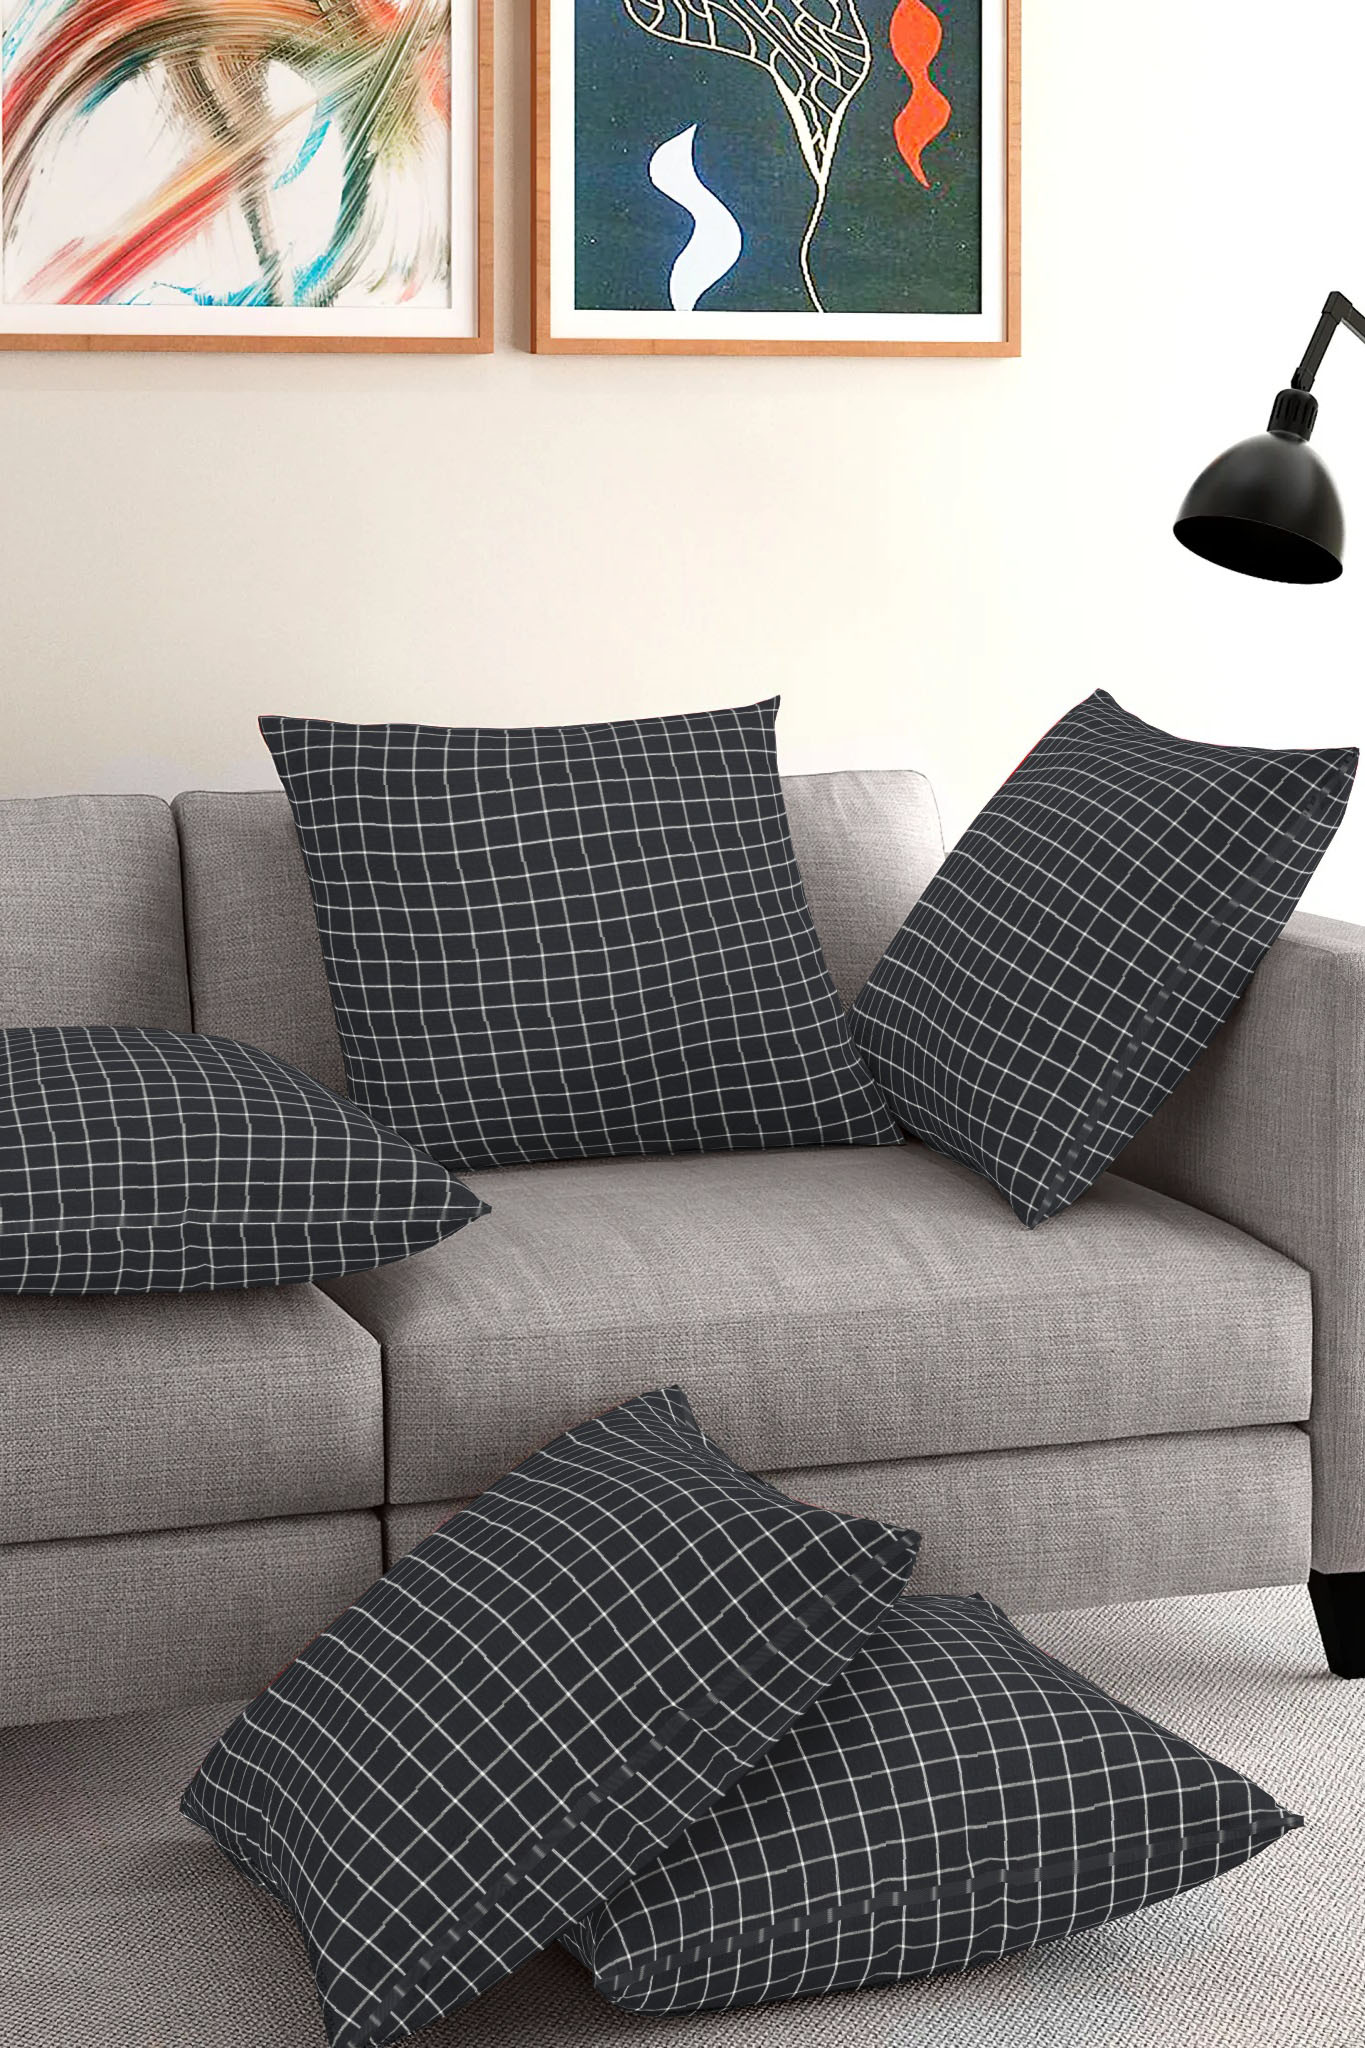 Set of 5-Black White Cotton Cushion Cover-35408-16x16 Inches